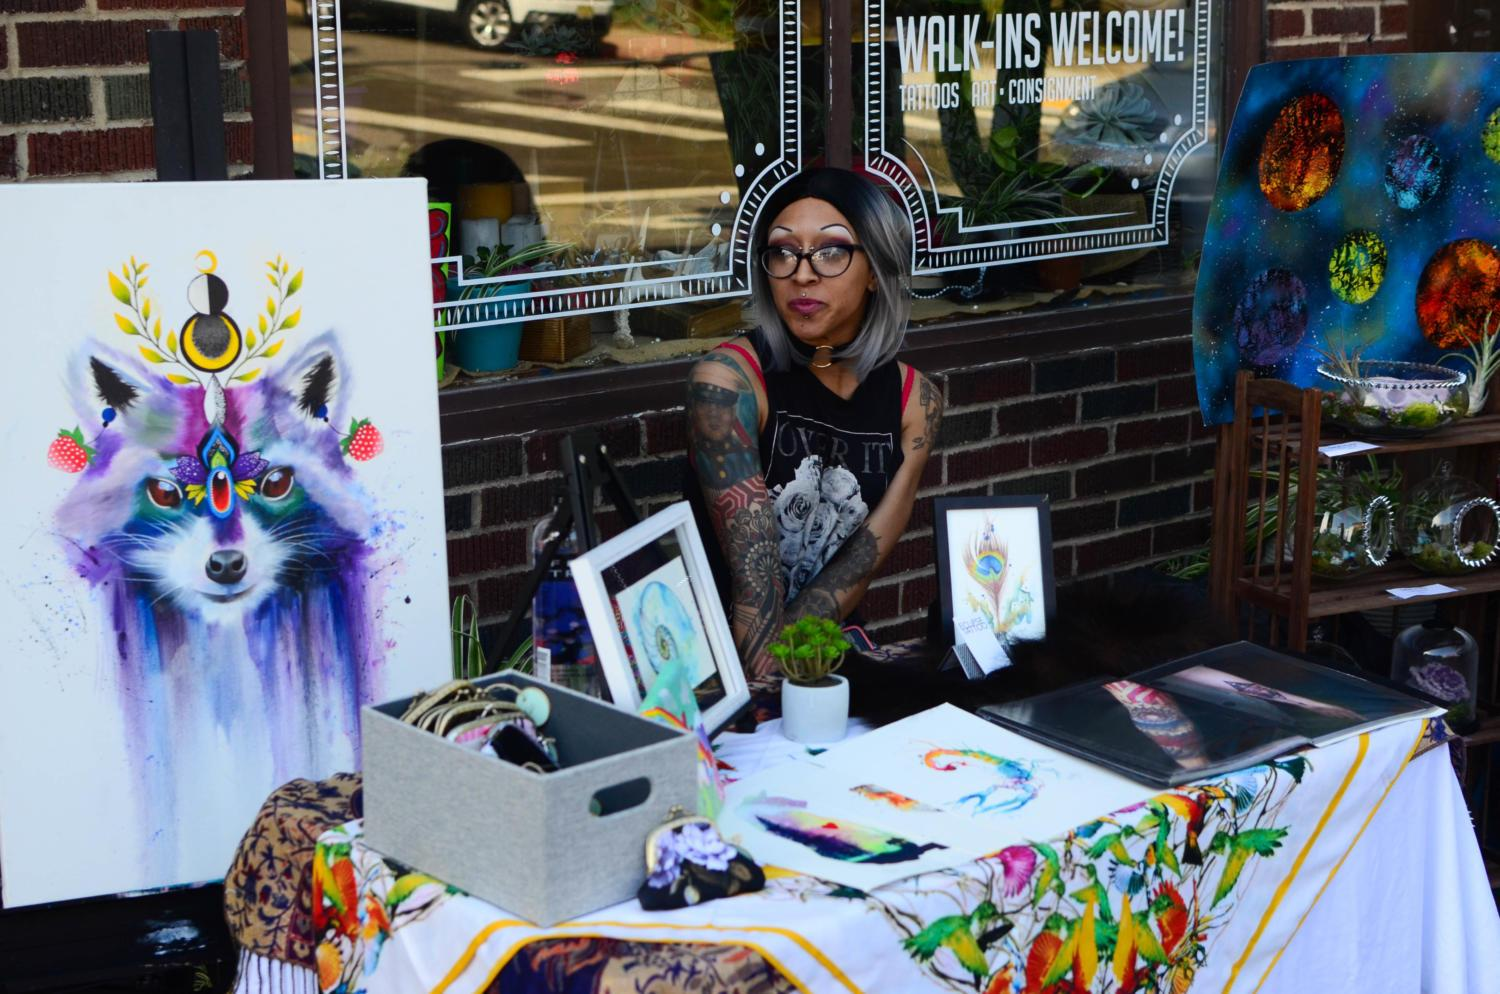 Christan Miller, owner of Eclipse Tattoo in Springdale, sits outside the Ravenwood Collective on Butler Street with her artwork on display at the 2018 Lawrenceville Art Crawl. (Photo by Jon Kunitsky | Staff Writer)